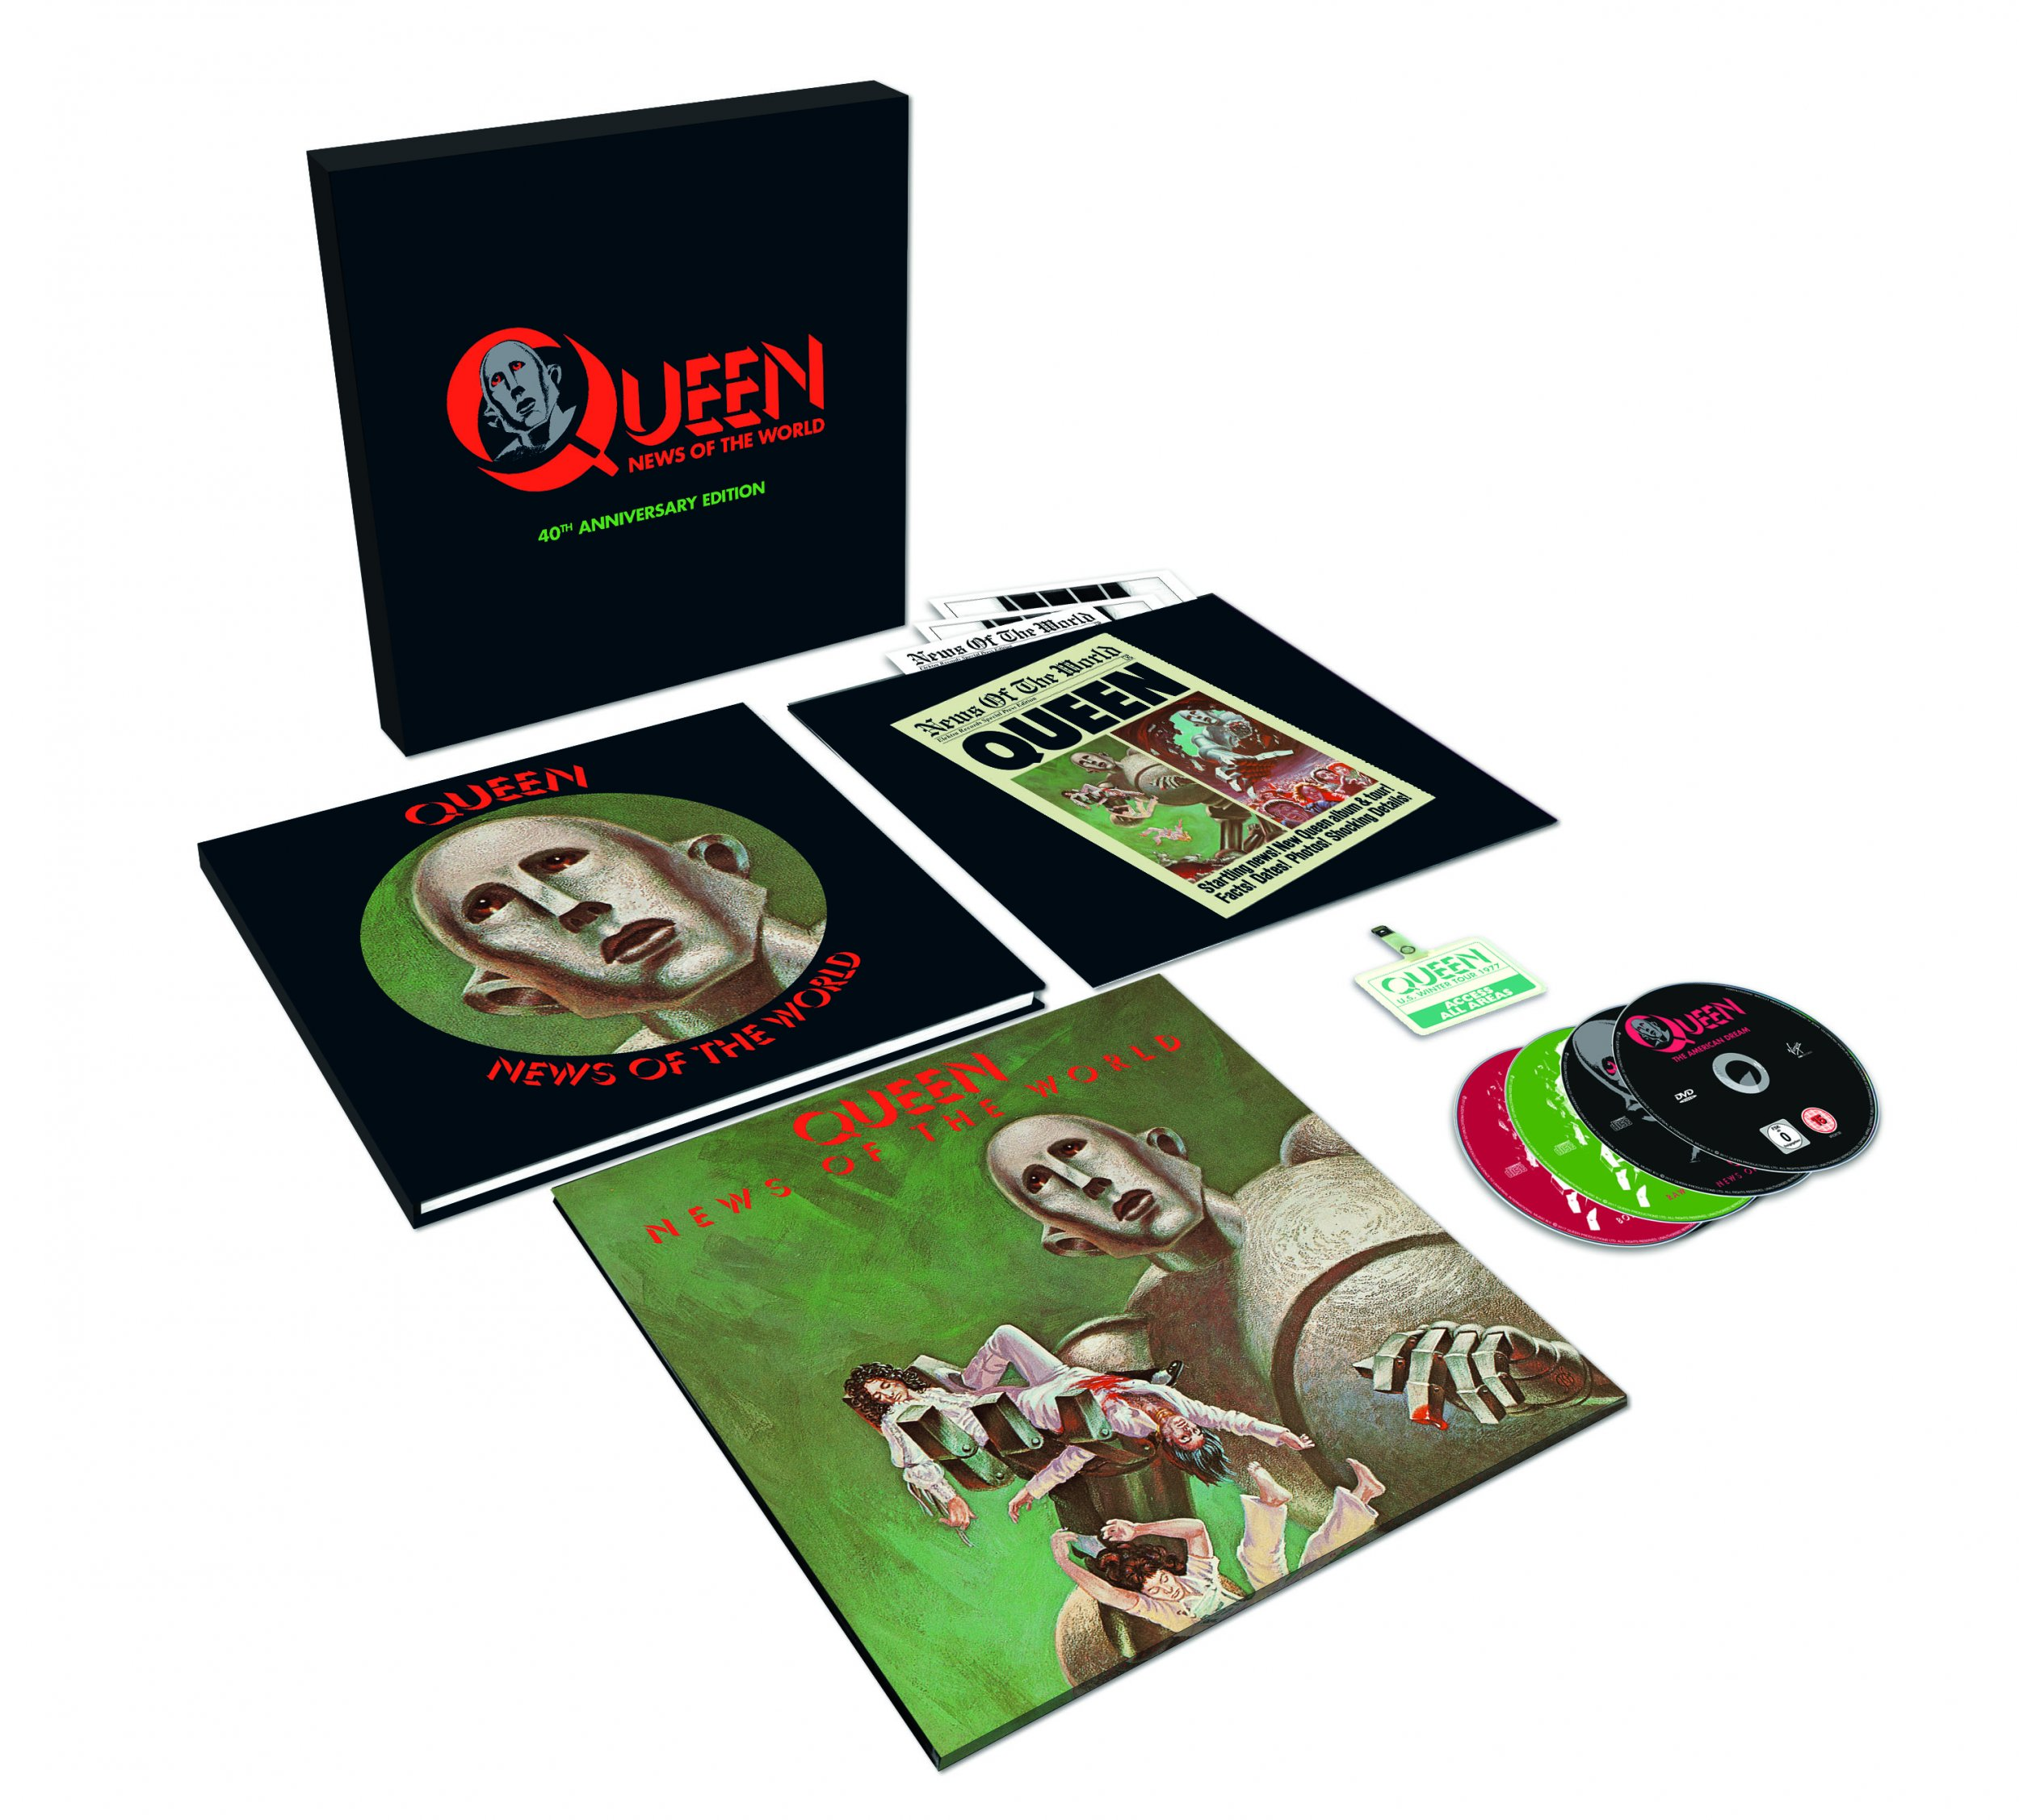 Queen - News of the World 40th Anniversary Edition